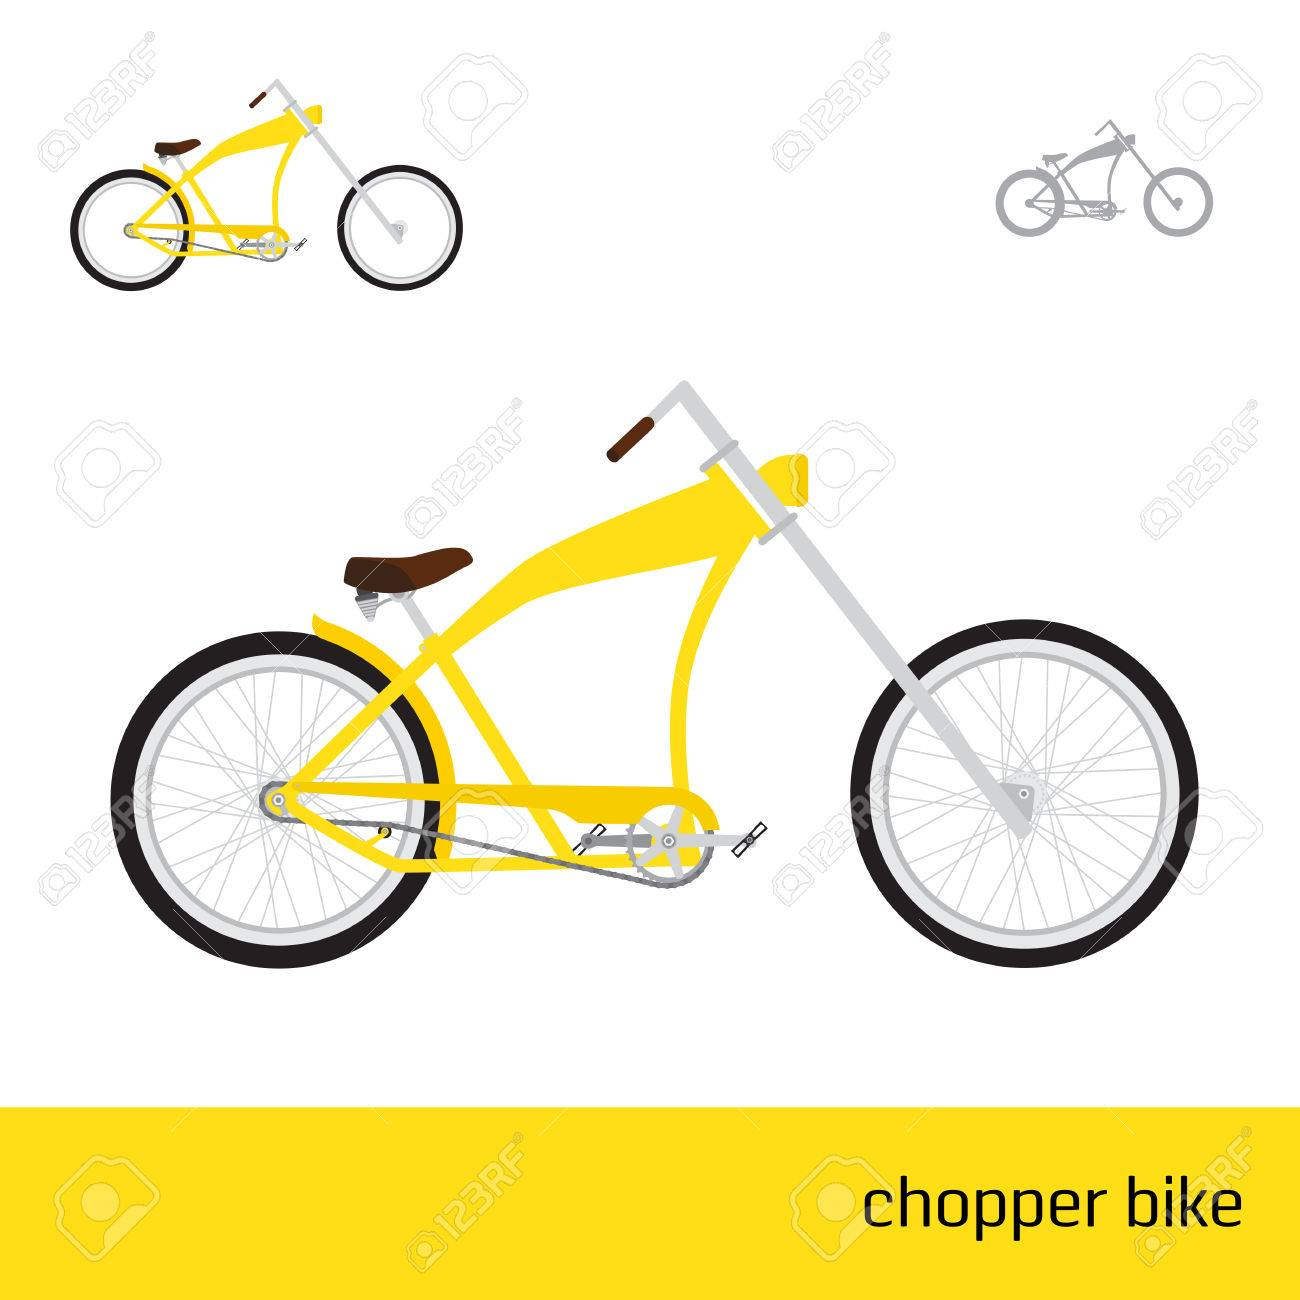 Chopper Bike Are Three Types Of Icons Royalty Free Cliparts, Vectors ...